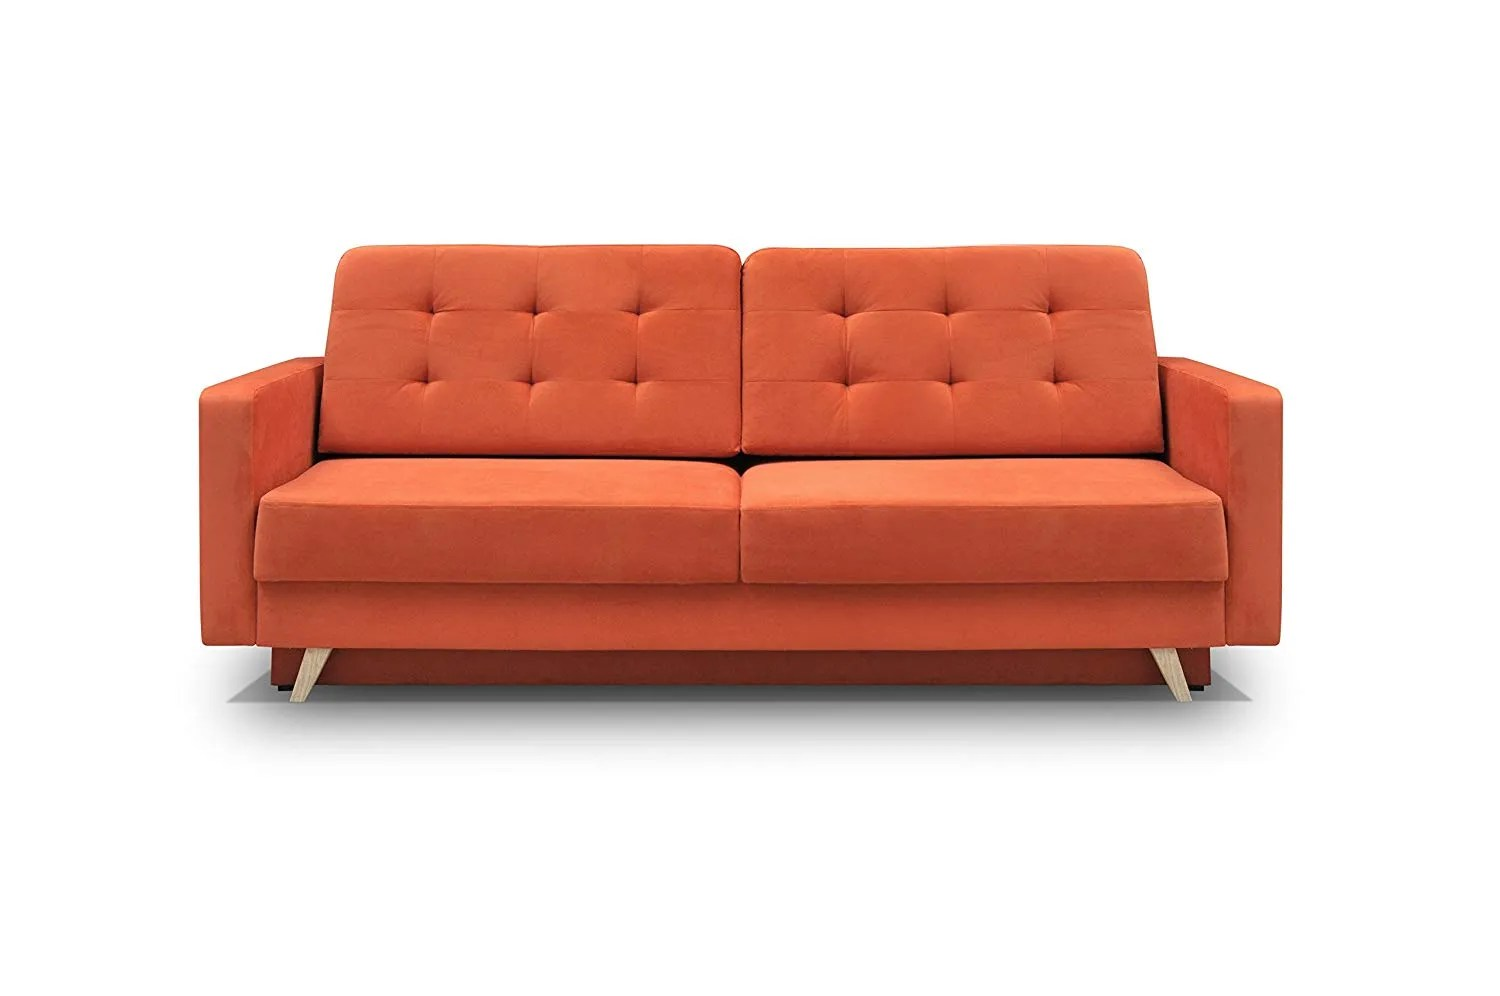 Our Top Picks For The Best Sofa Bed Options